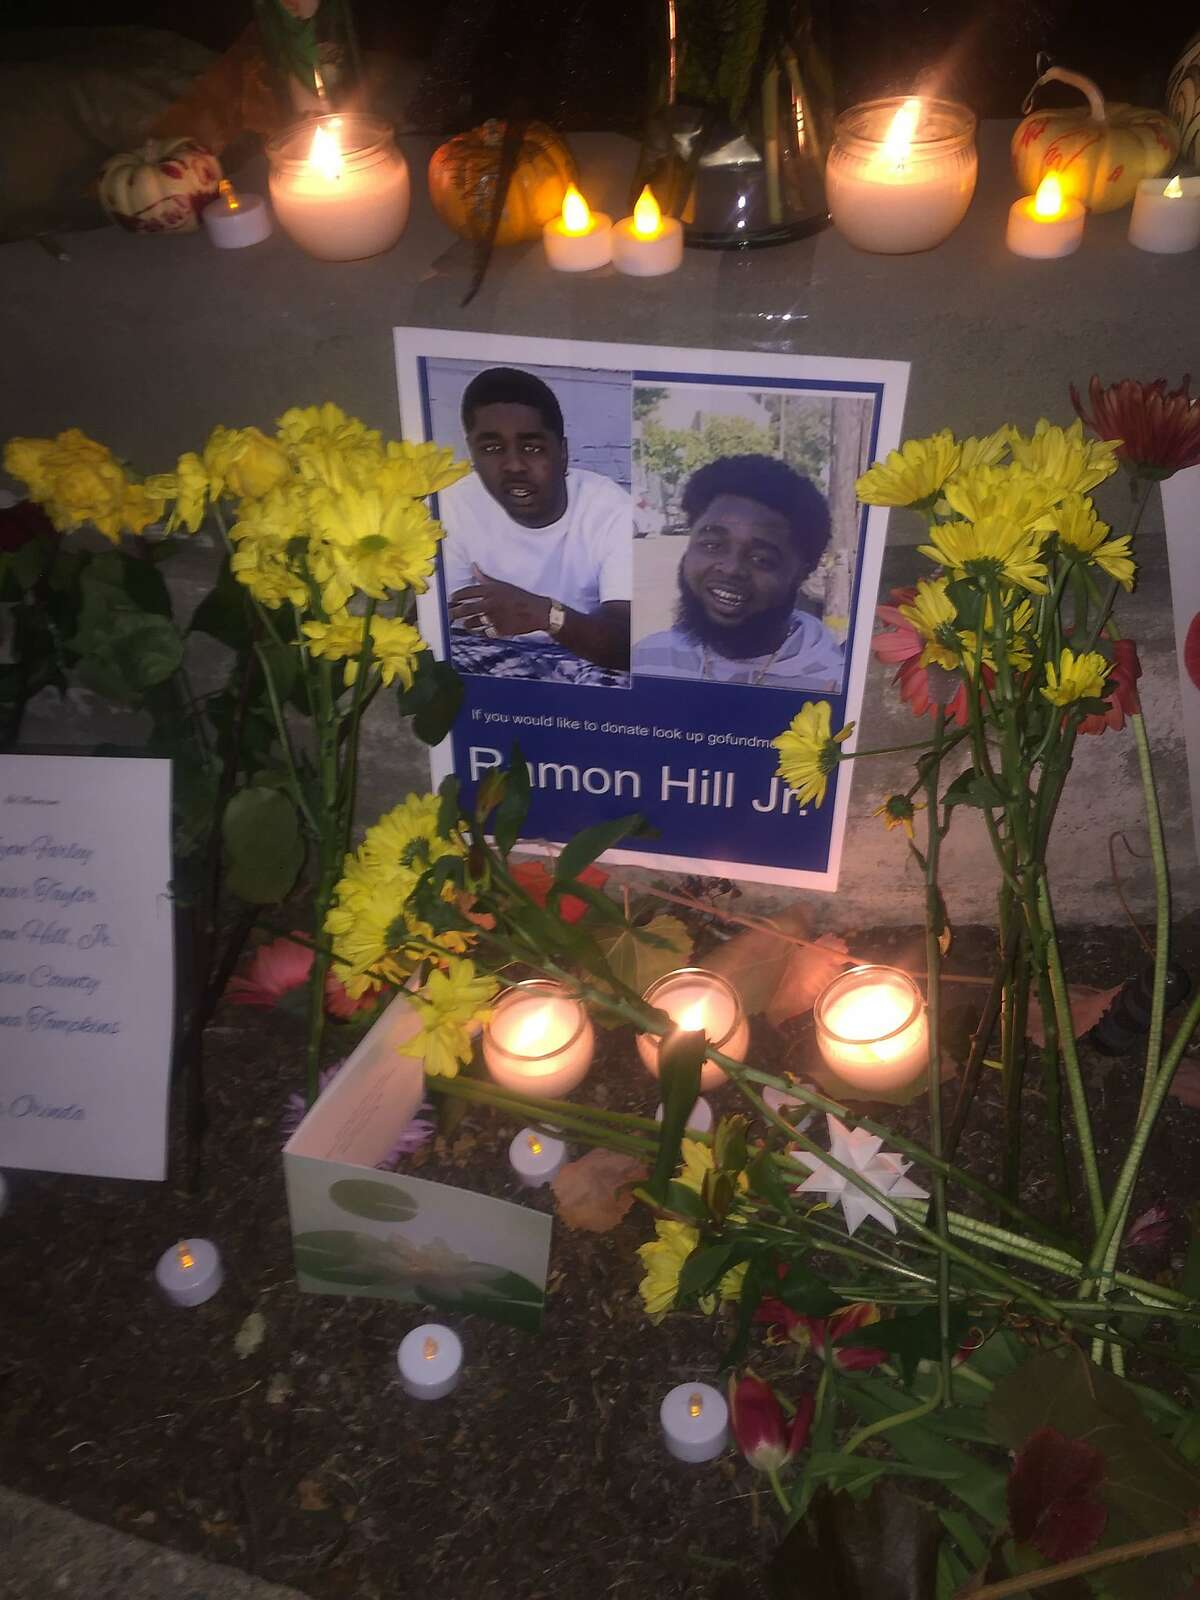 A spontaneous memorial has been placed outside the location in Orinda, Calif. where Raymon Hill Jr. was shot to death Halloween evening, while attending a party hosted in an AirBnB short-term rental home. Hill and three other people lost their lives that evening.